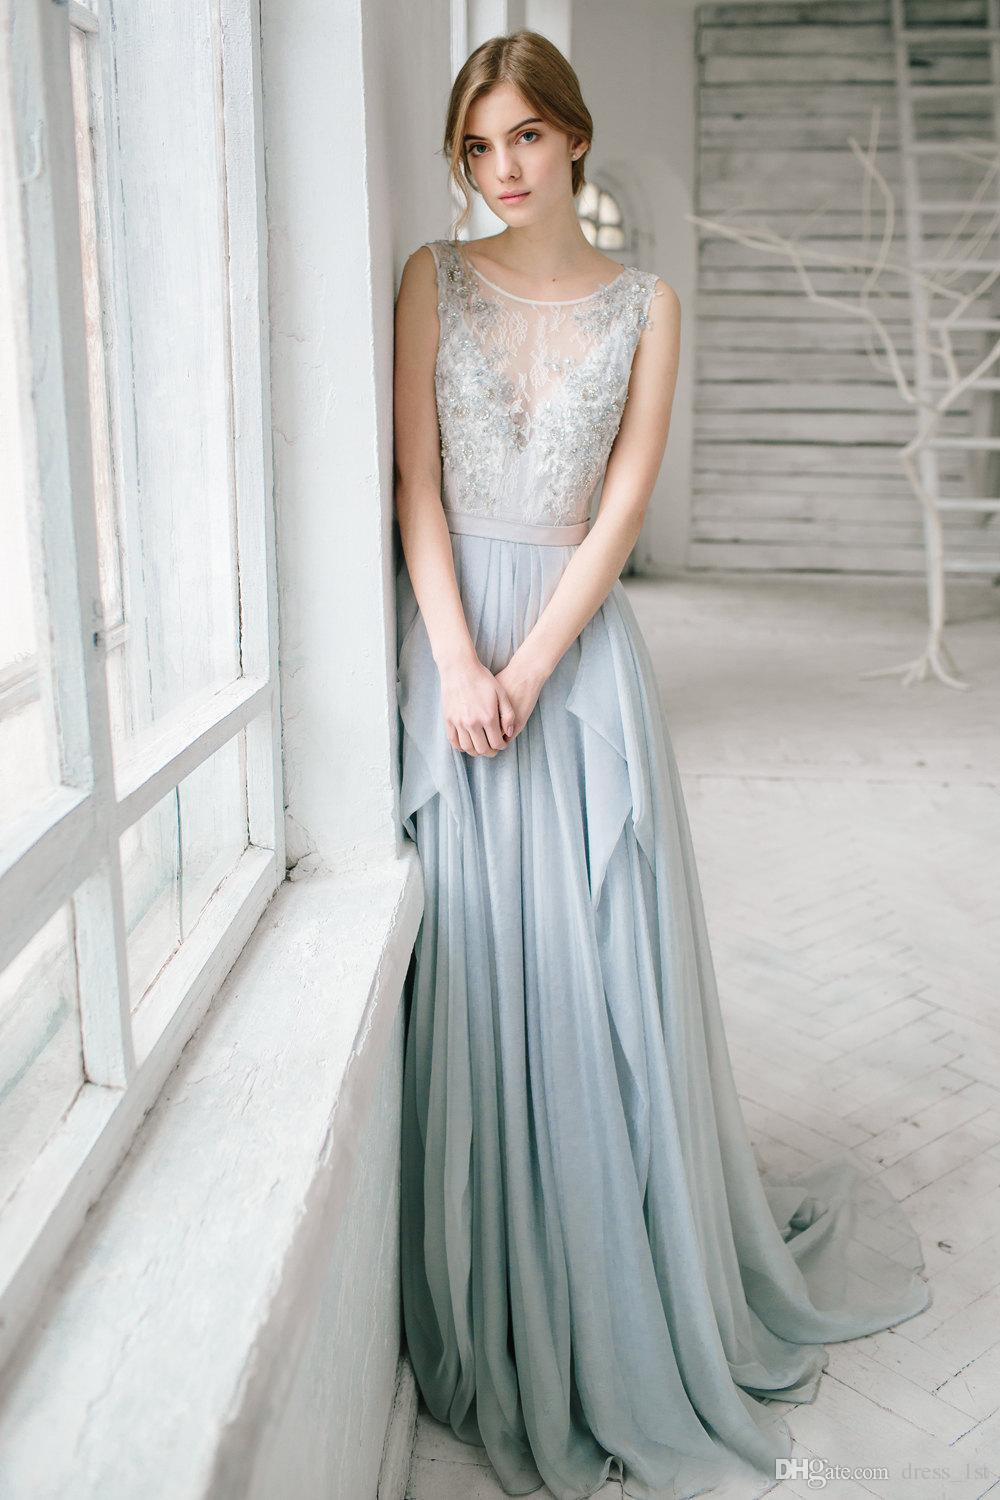 Charming 2016 Dusty Blue Chiffon Backless Bridesmaid Dresses Long Cheap Jewel Lace Beaded Sash Long Maid Of Honor Gowns Custom Made EN111511